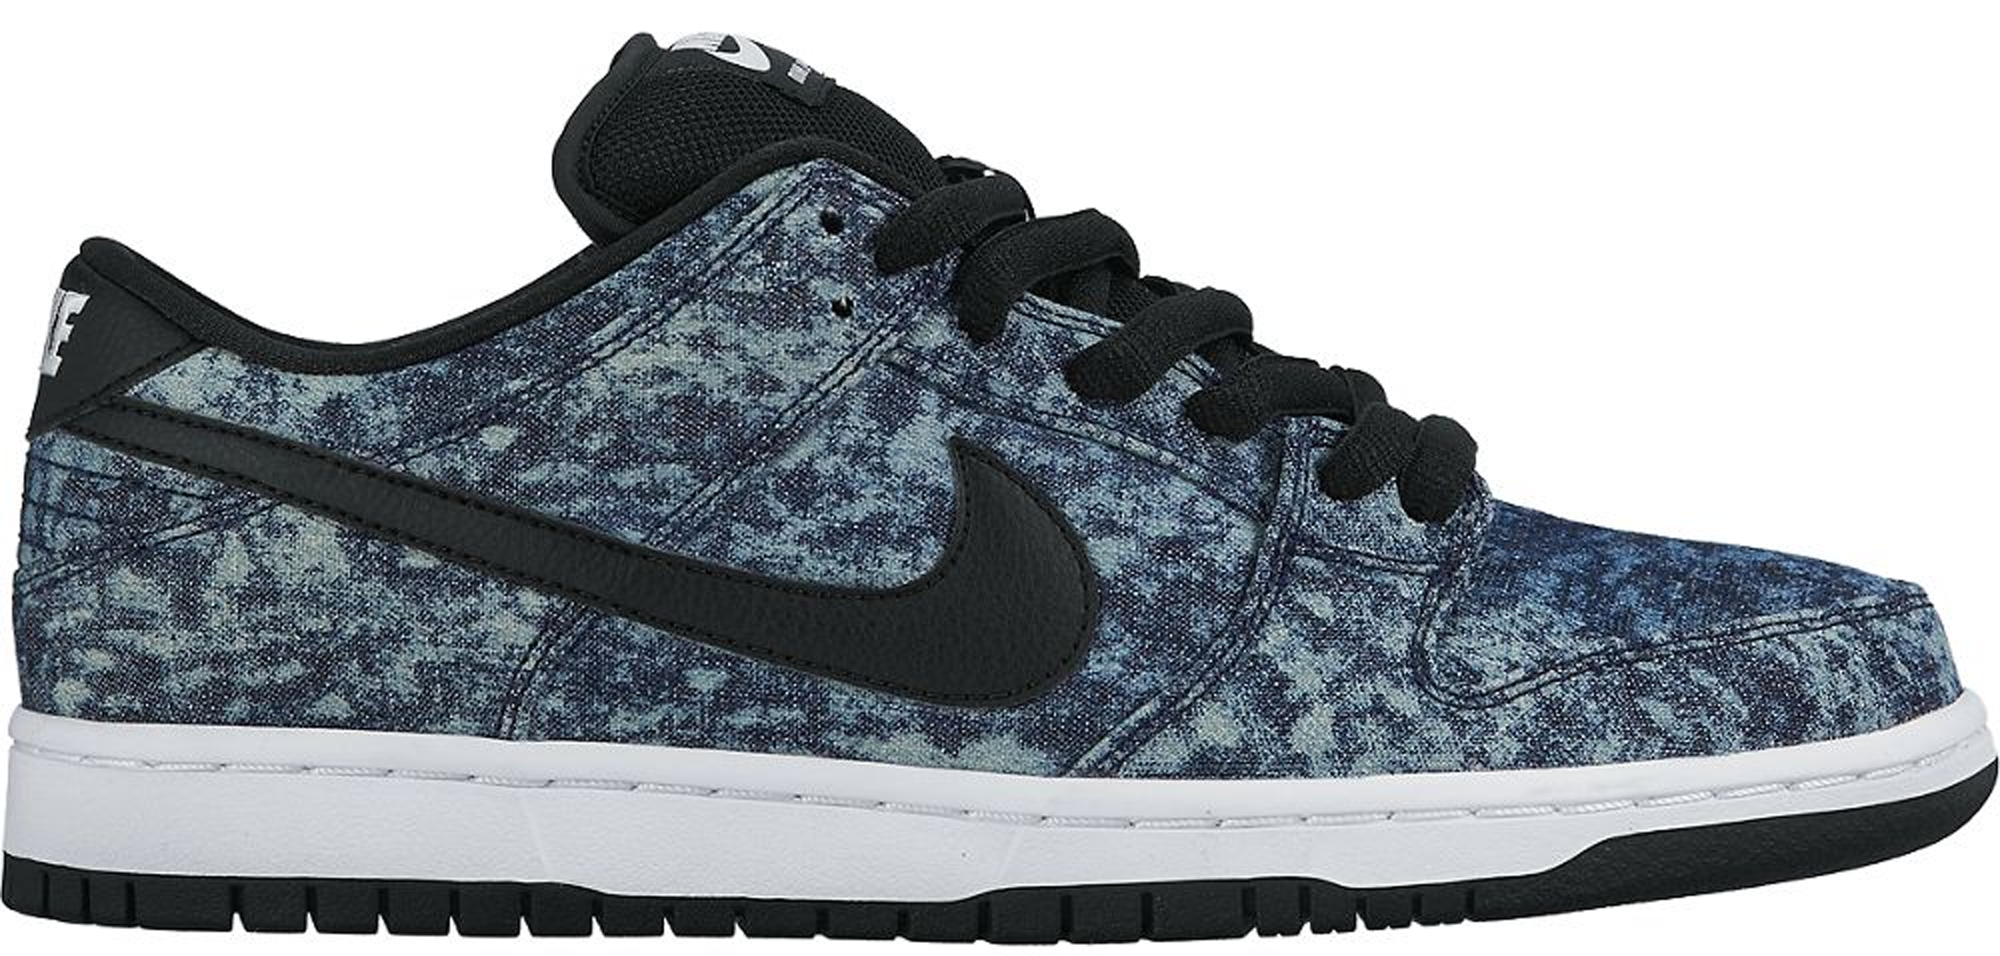 Nike SB Dunk Low Bleached Denim